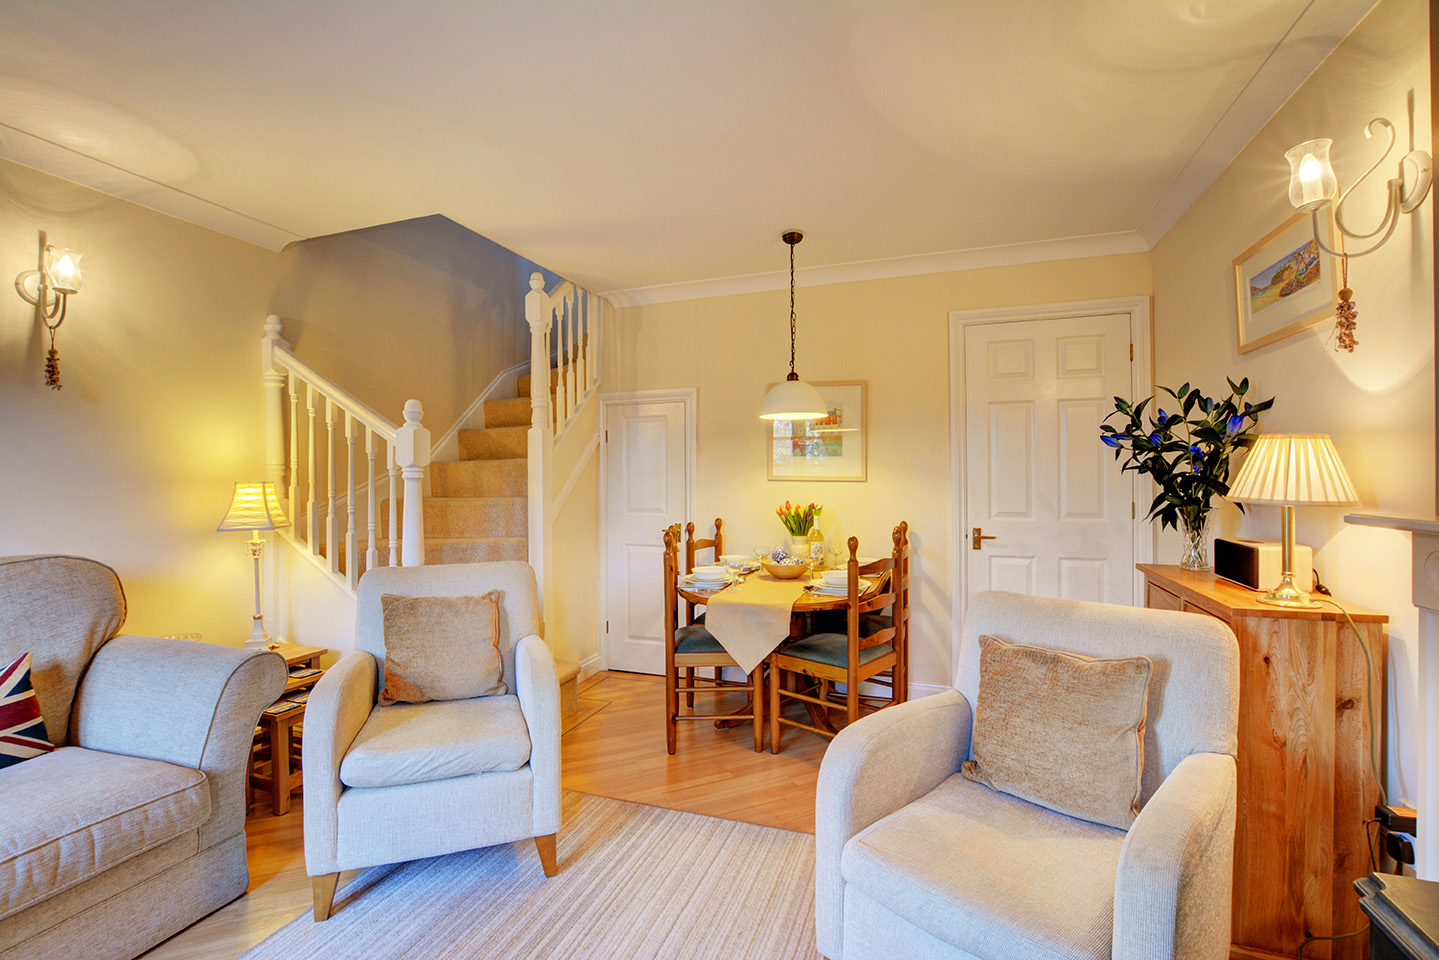 Ship Shape cosy holiday cottage in seaside harbour of Padstow living room 6.jpg